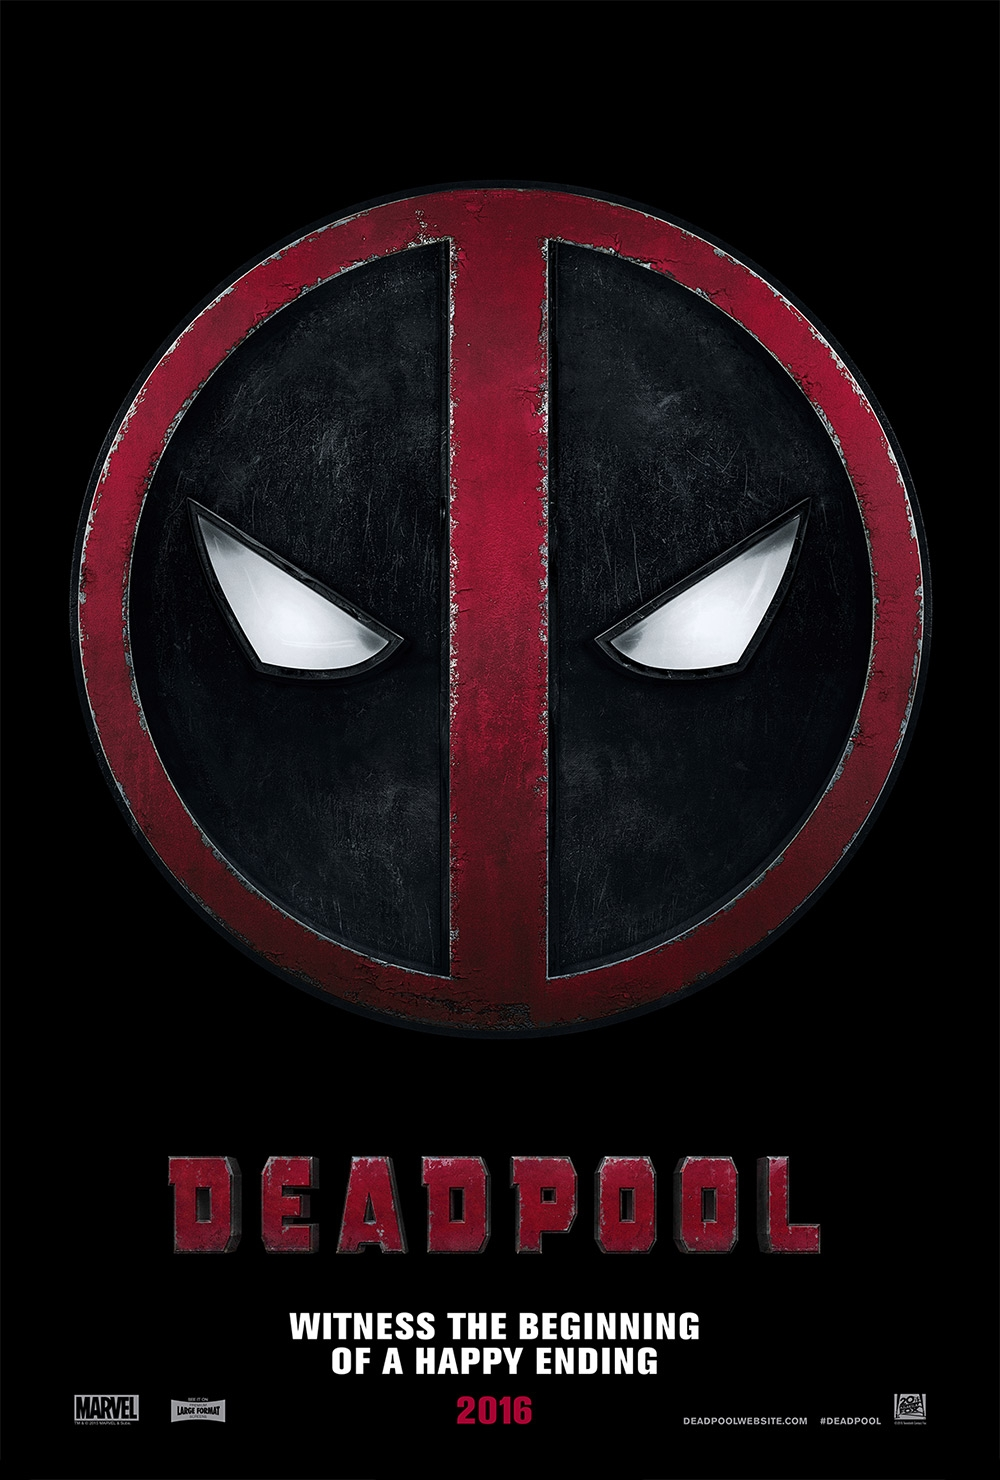 Drawn poster deadpool Role Cameos More Colossus's movie